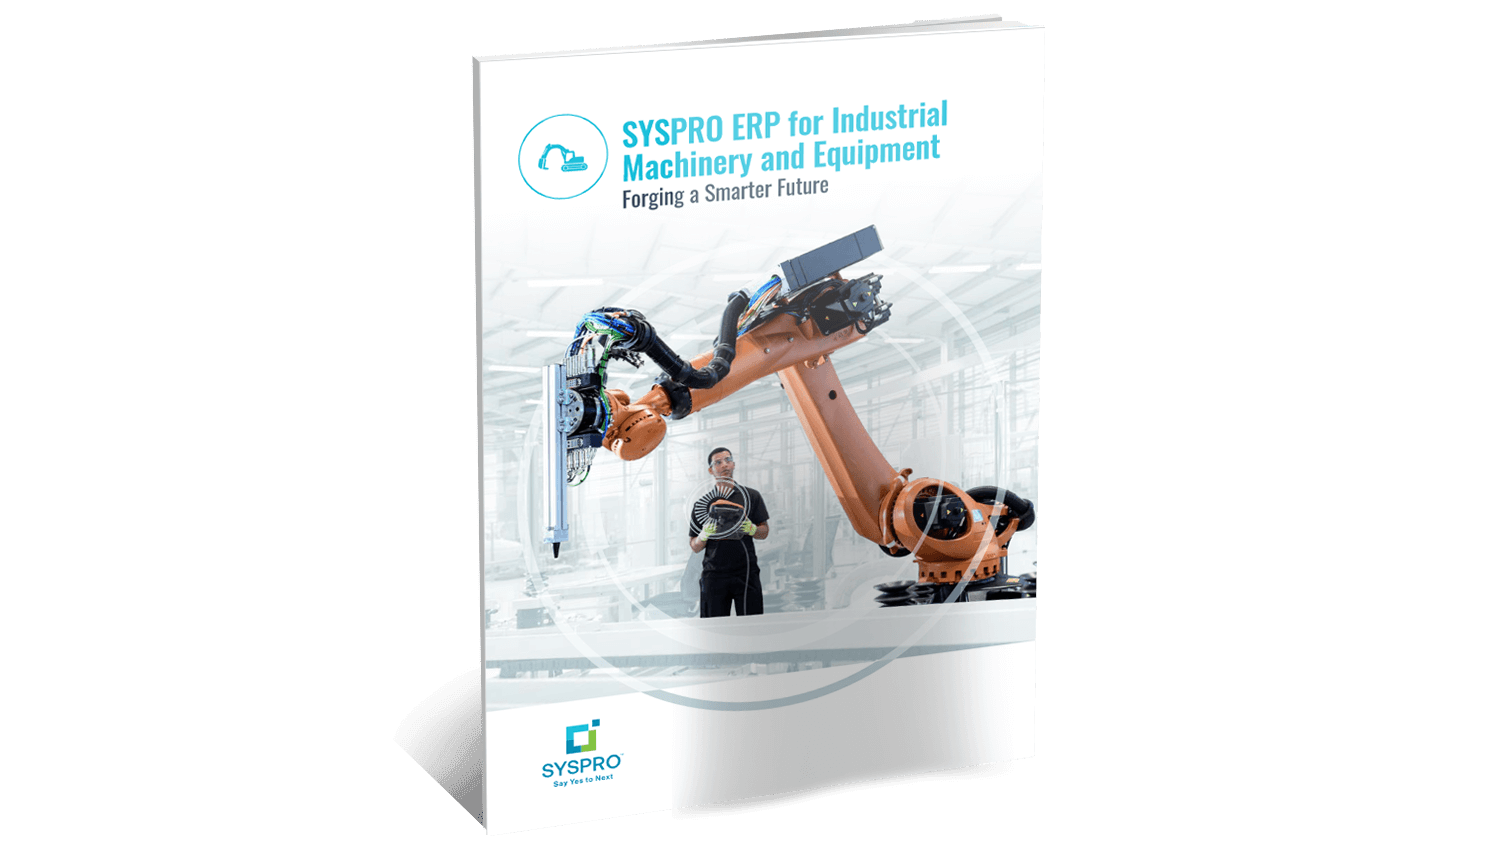 SYSPRO-ERP-software-system-industrial_machinery_and_equipment_industry_brochure_thumbnail